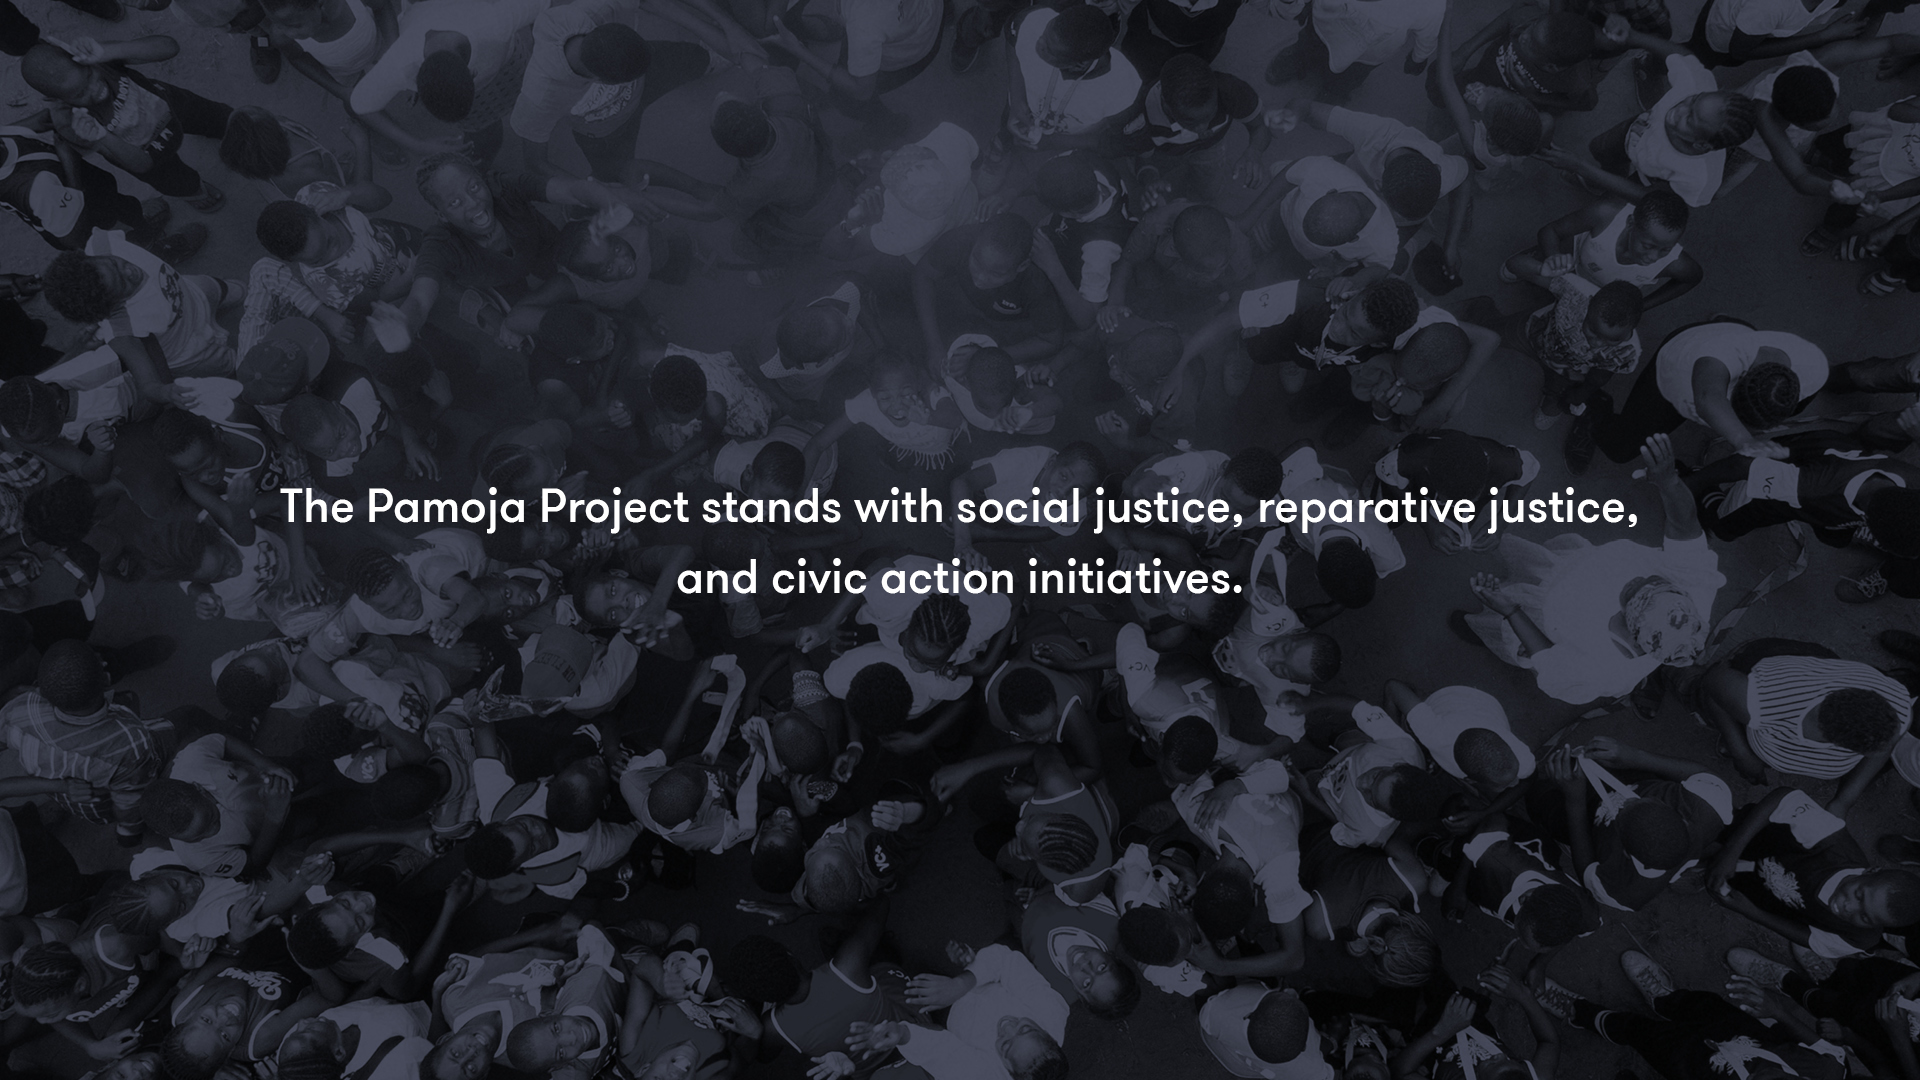 The Pamoja Project_Website material11